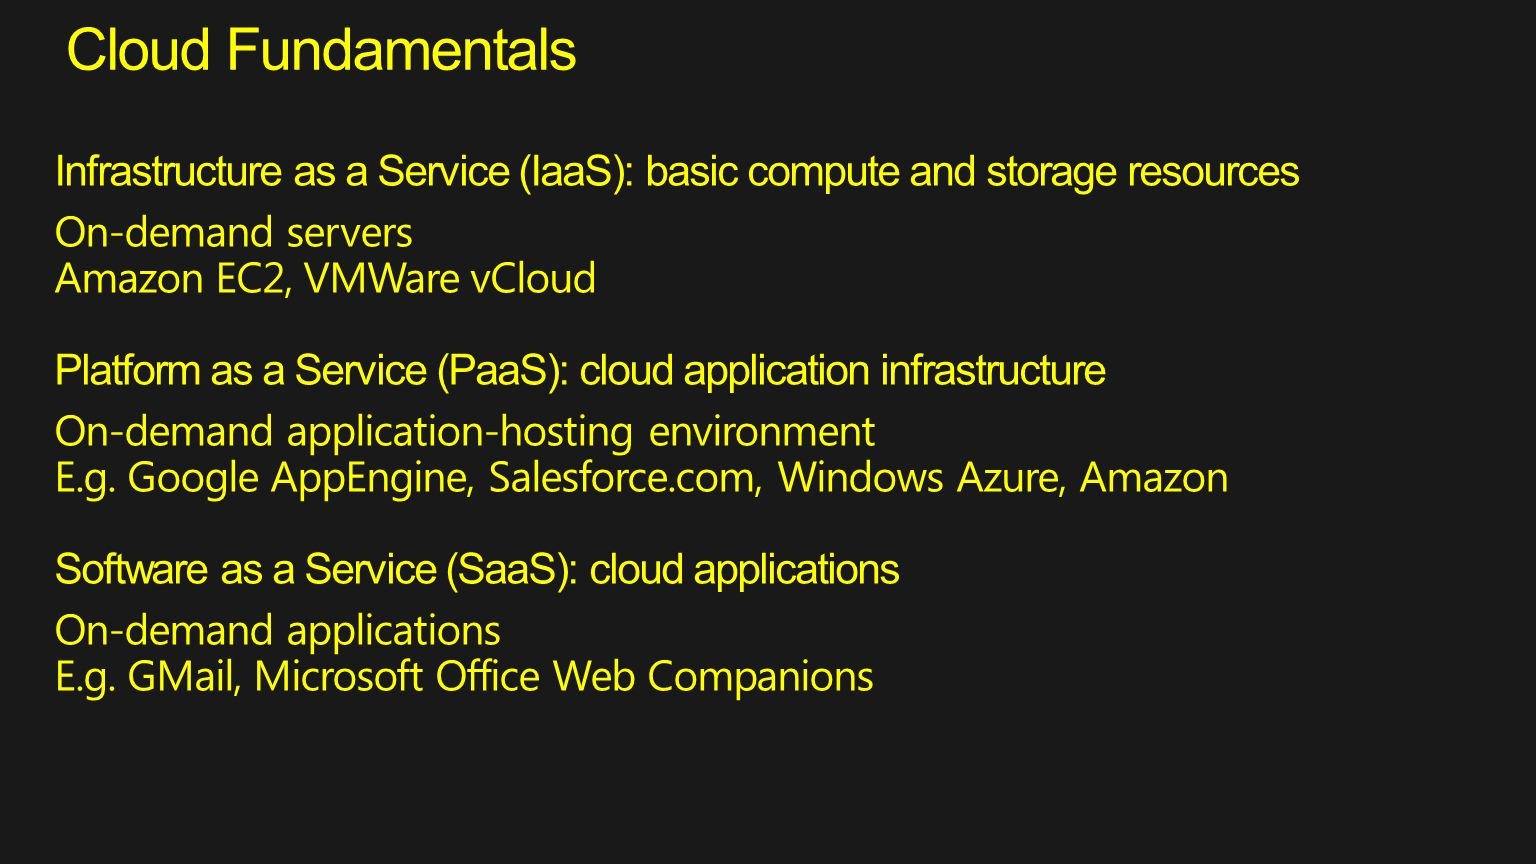 Cloud Fundamentals Infrastructure as a Service (IaaS): basic compute and storage resources. On-demand servers.